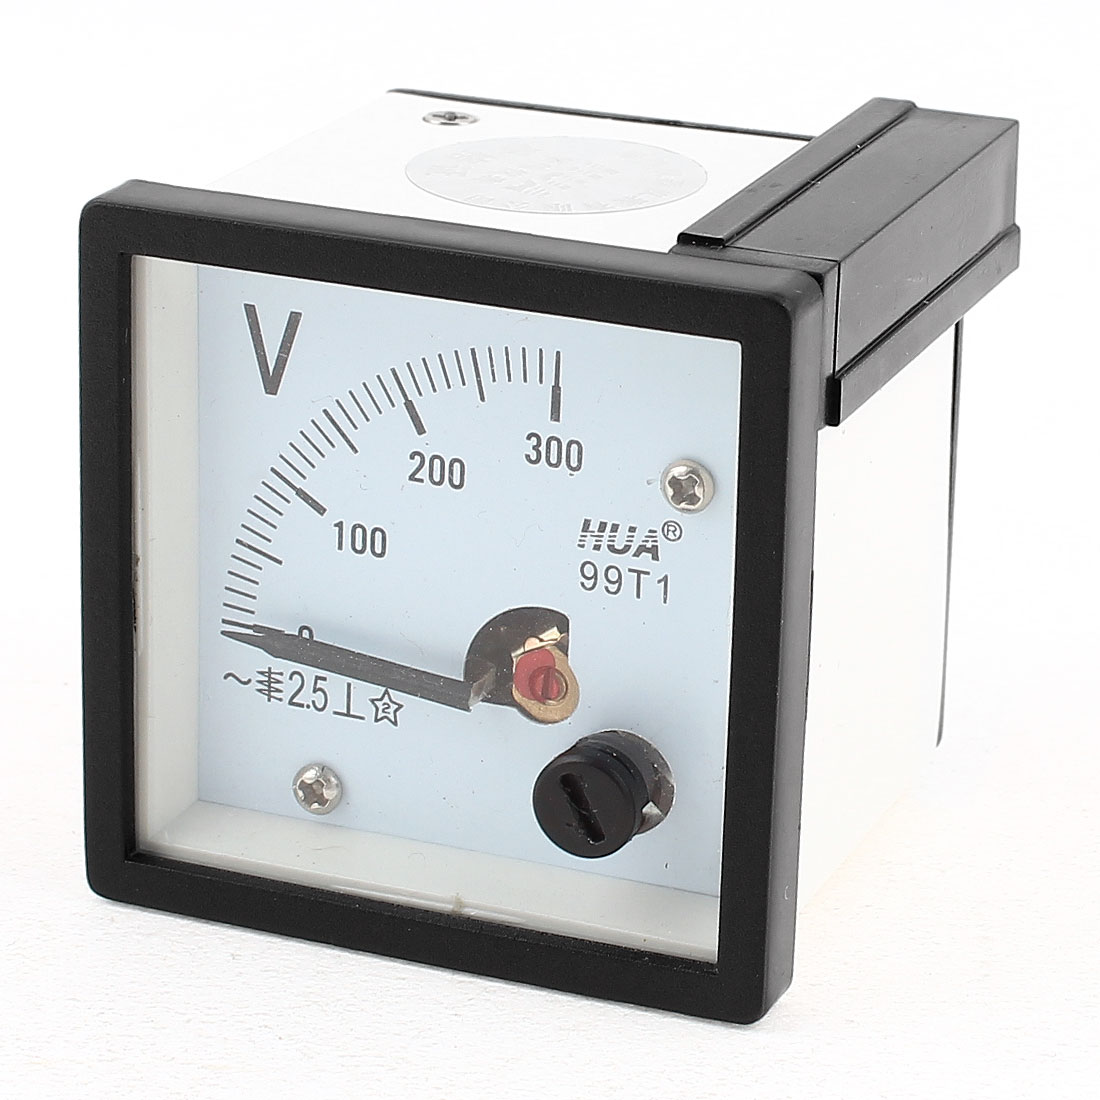 AC 300V Measuring Range Panel Mounting Voltmeter 99T1-AV 46mm x 46mm